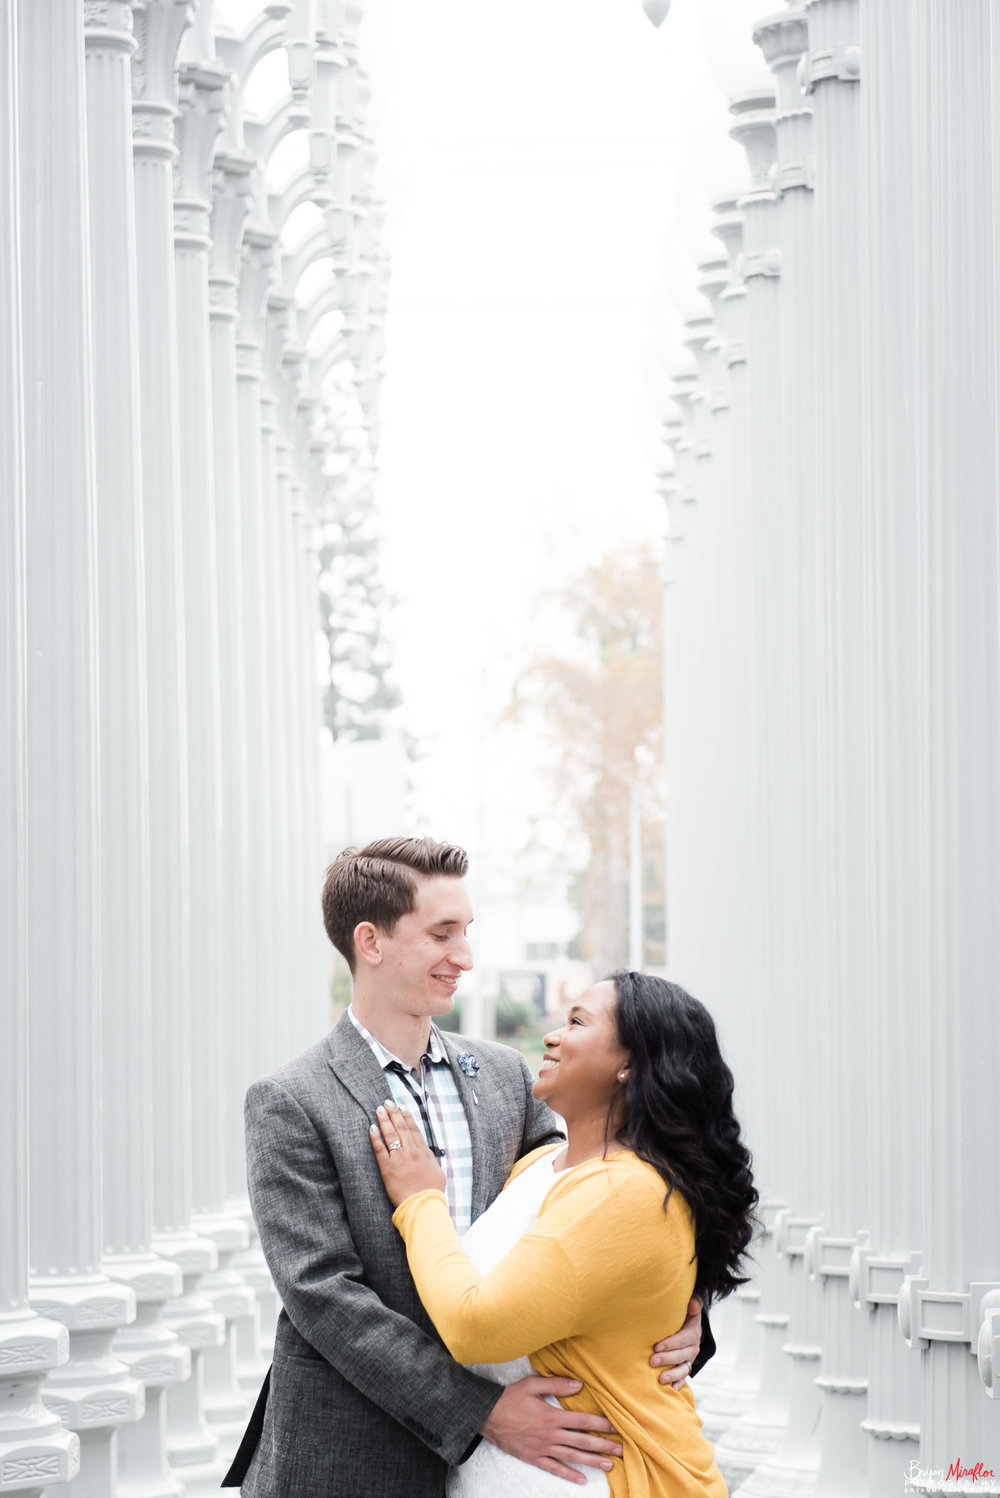 Bryan-Miraflor-Photography-Vanessa-Tommy-LACMA-DTLA-Engagement-Photoshoot-20161210-84.jpg